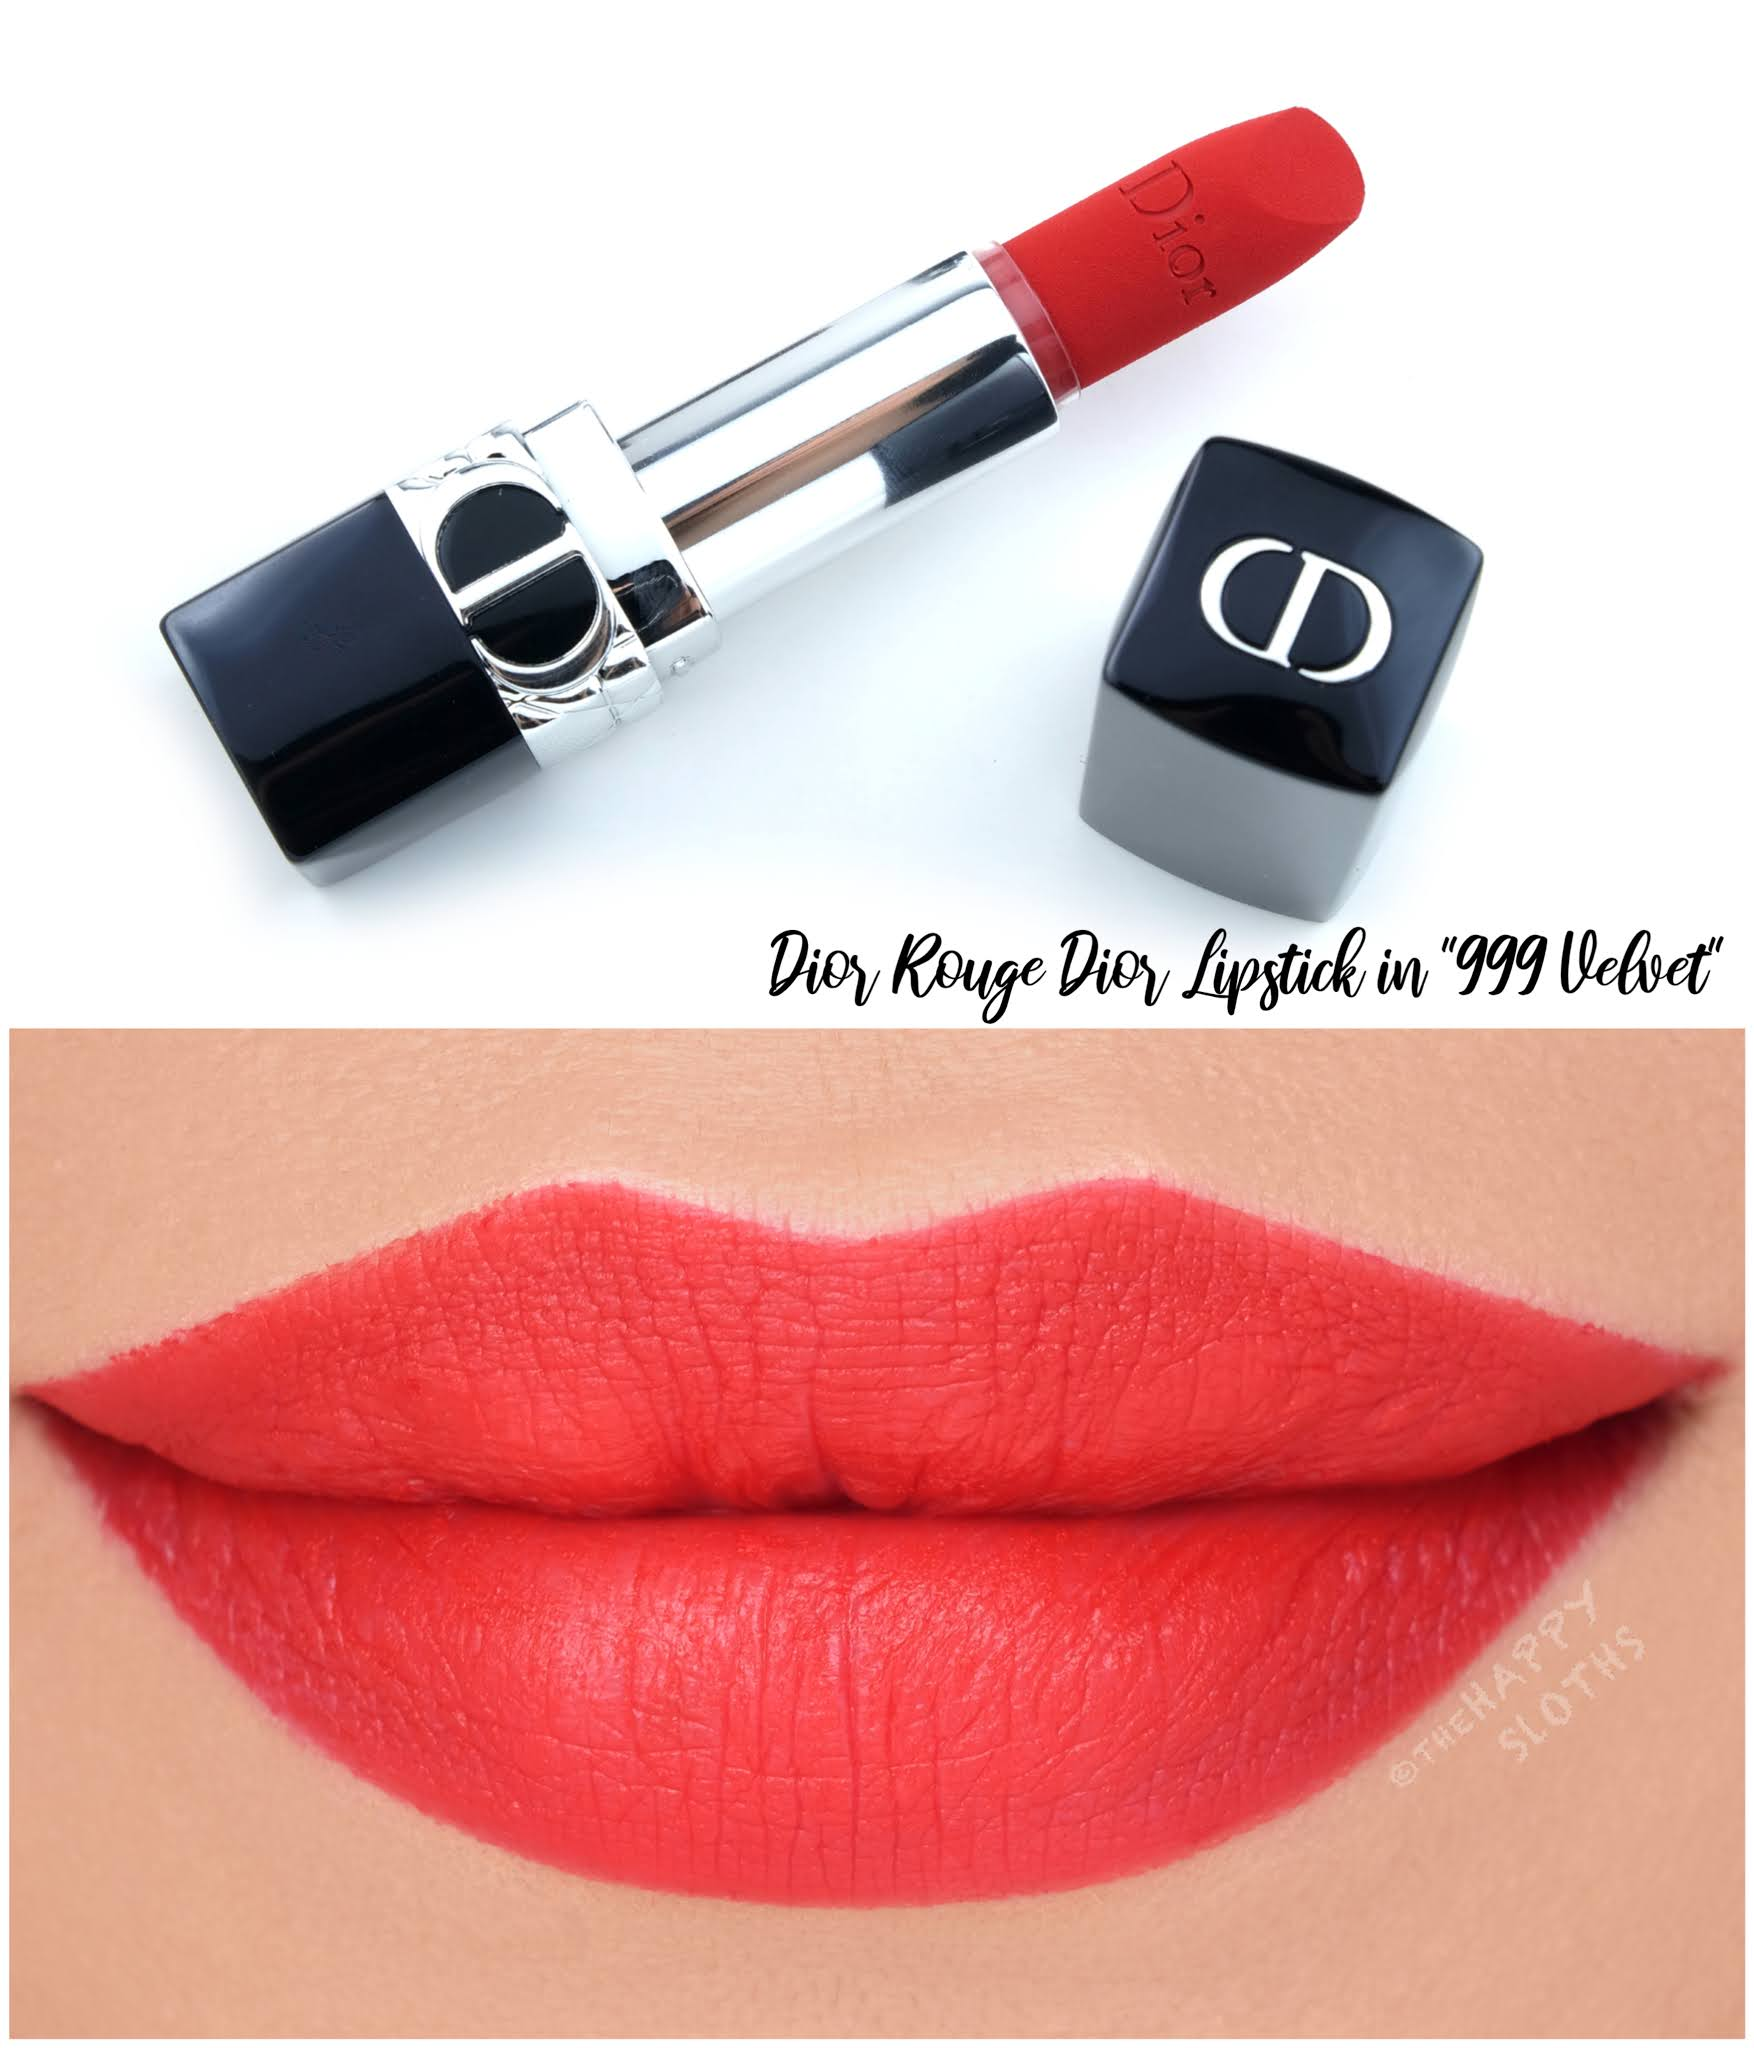 Dior | *NEW* Rouge Dior Refillable Lipstick in 999 Velvet: Review and Swatches